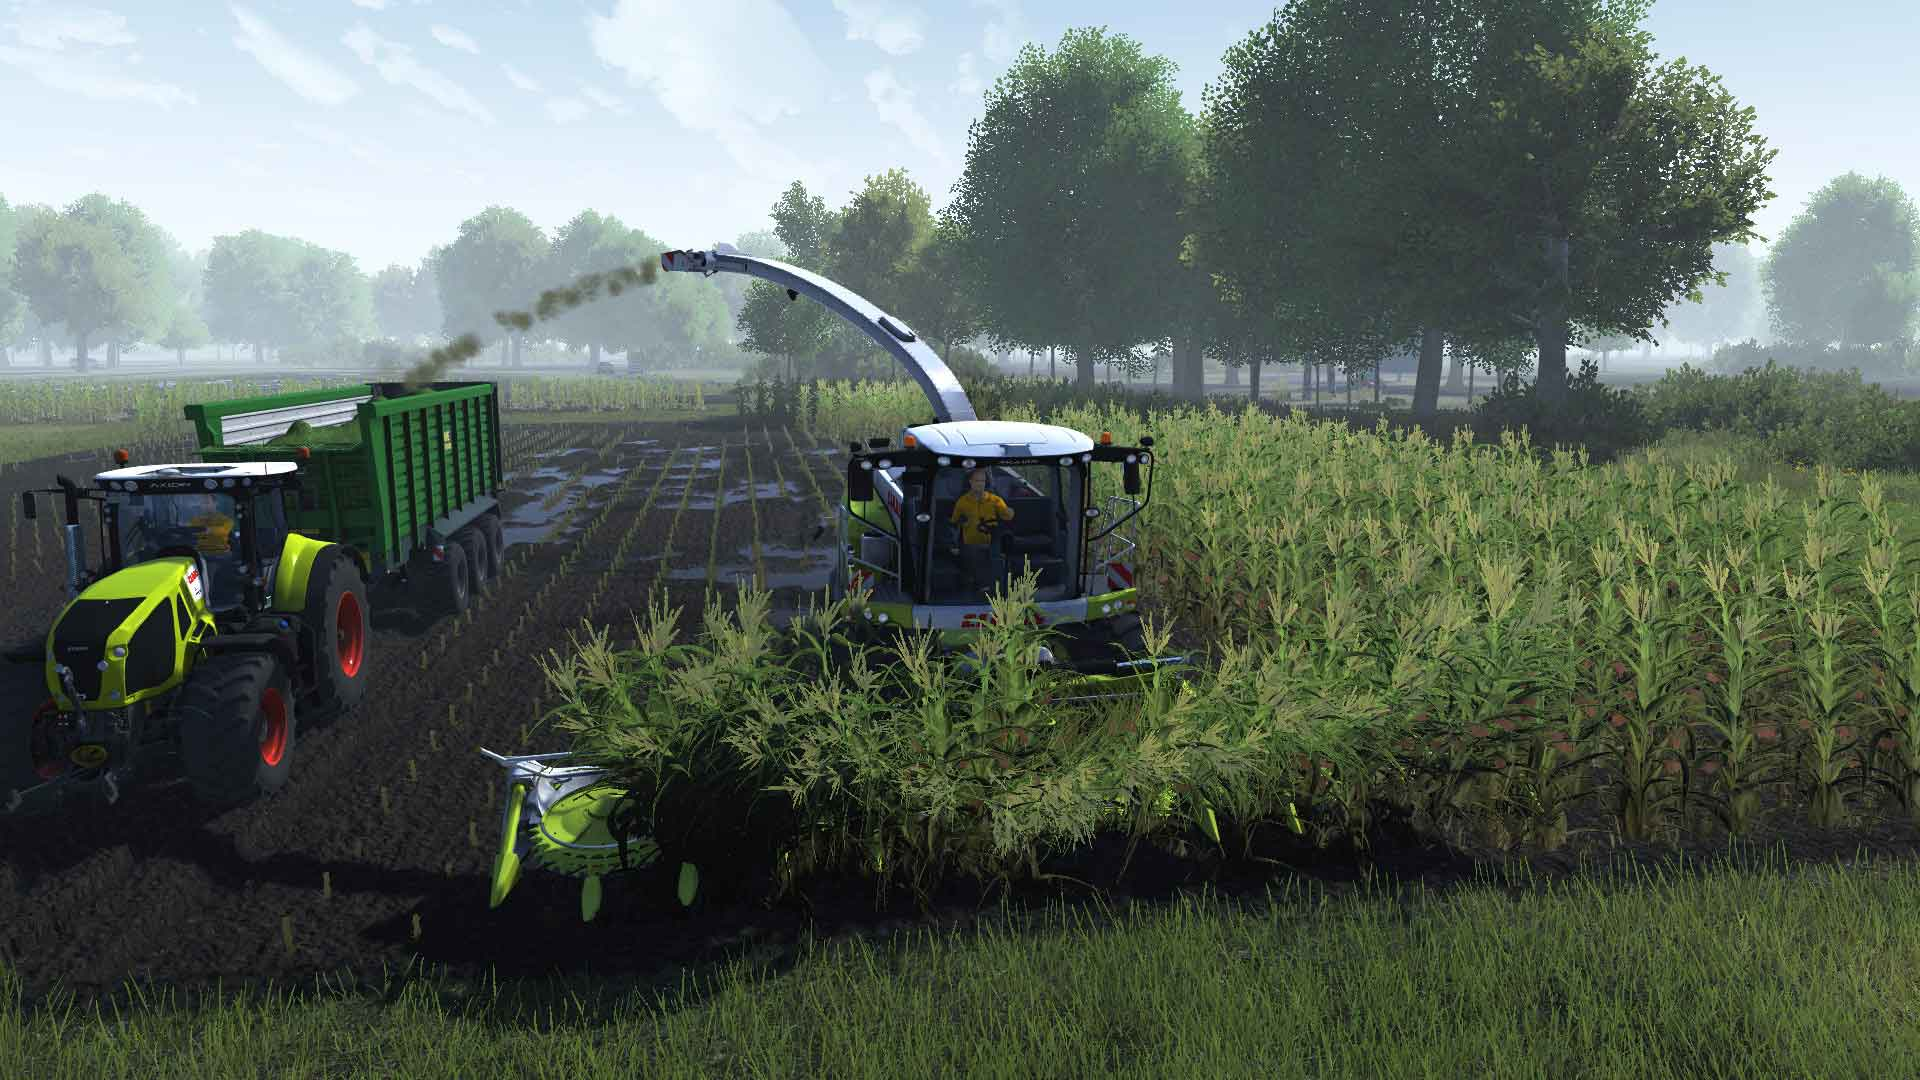 FS 21 Screenshot